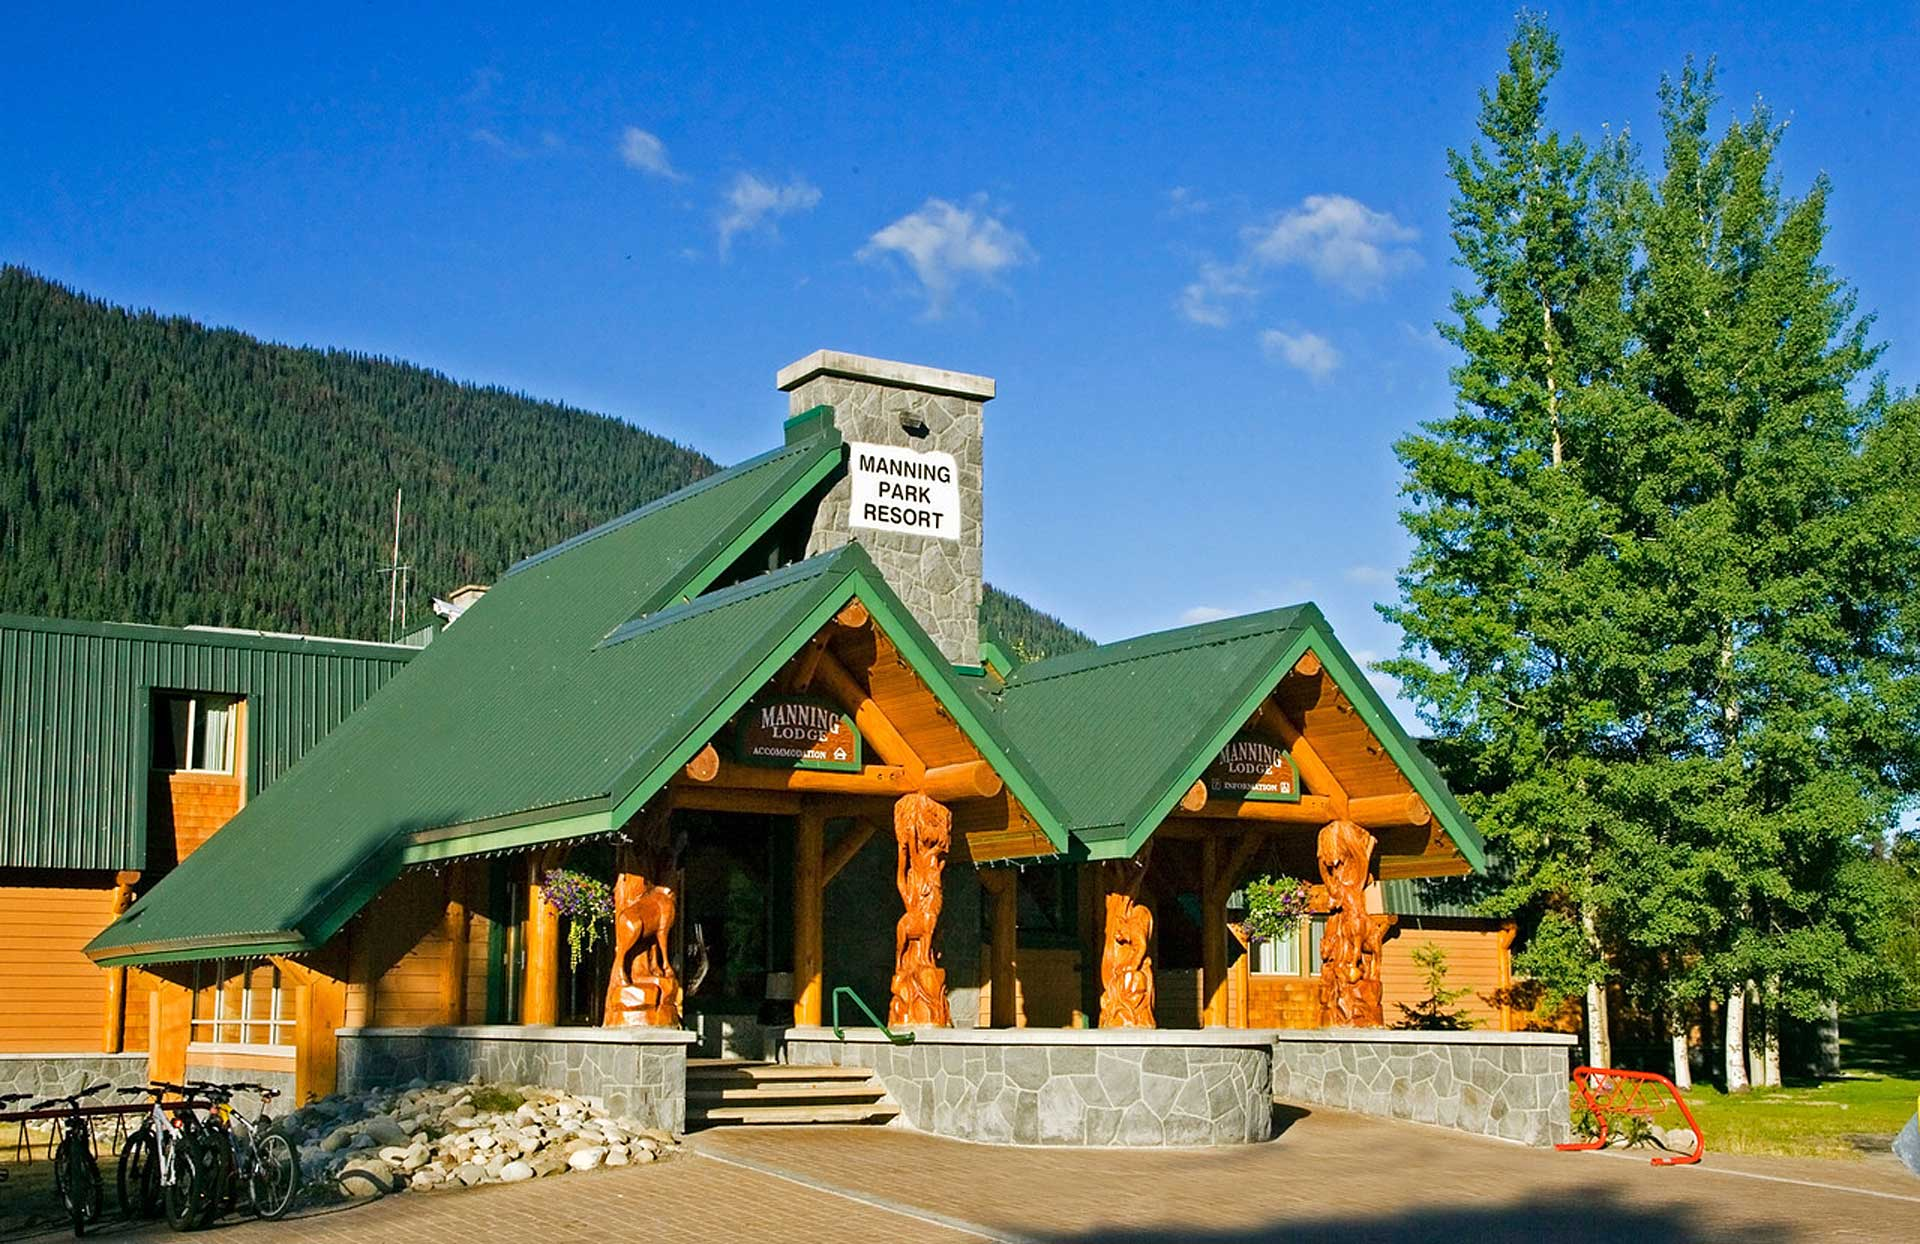 Resorts & More in the Similkameen